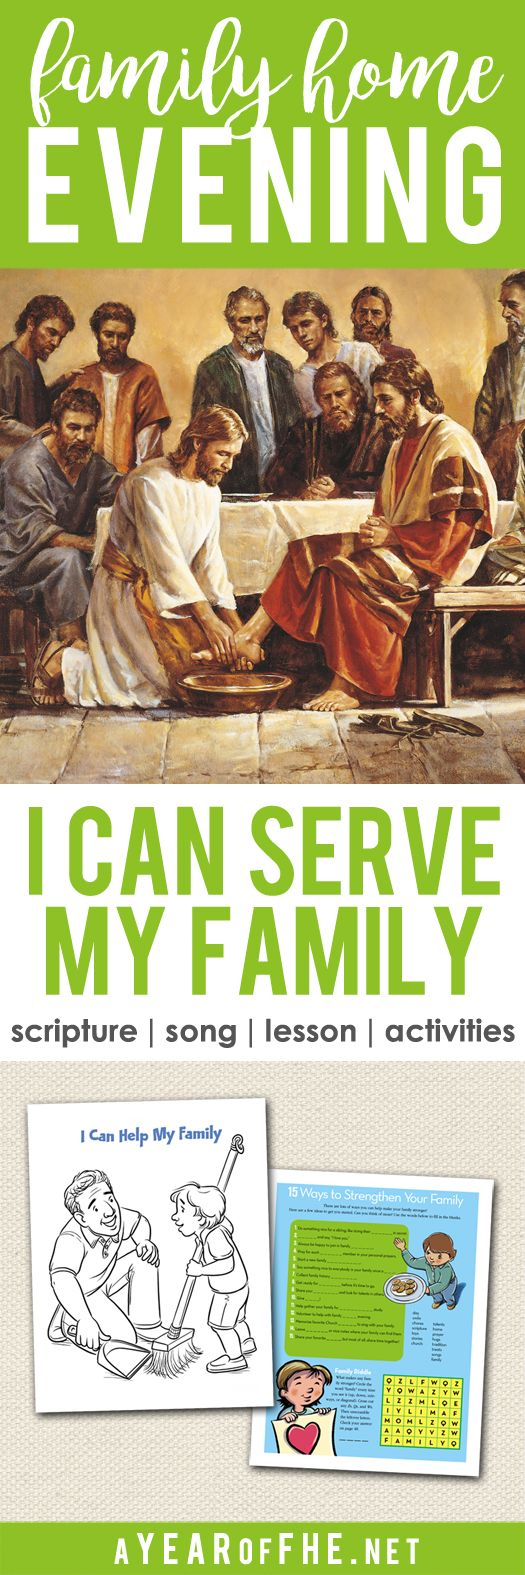 A Year of FHE / A family home evening about the importance of serving each other within our families. Includes scripture, song, lesson, and three activities to choose from. #service #lds #familiesareforever